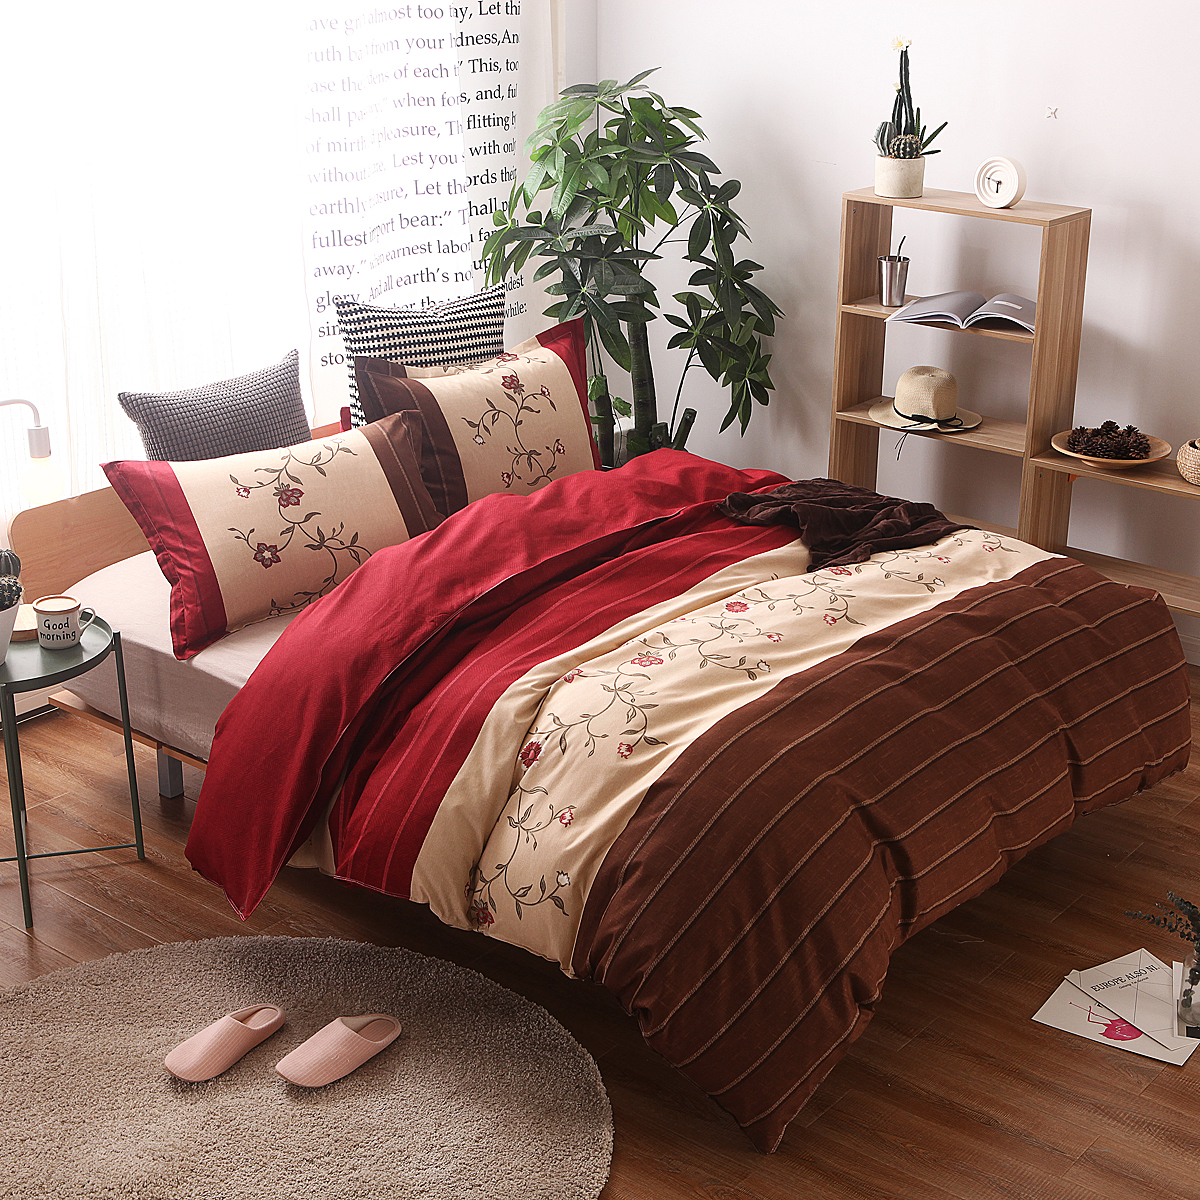 Beige and brown bedding - Home Textiles Red Beige Brown Flower Style Bedding Sets King Queen Full Twin Us Uk